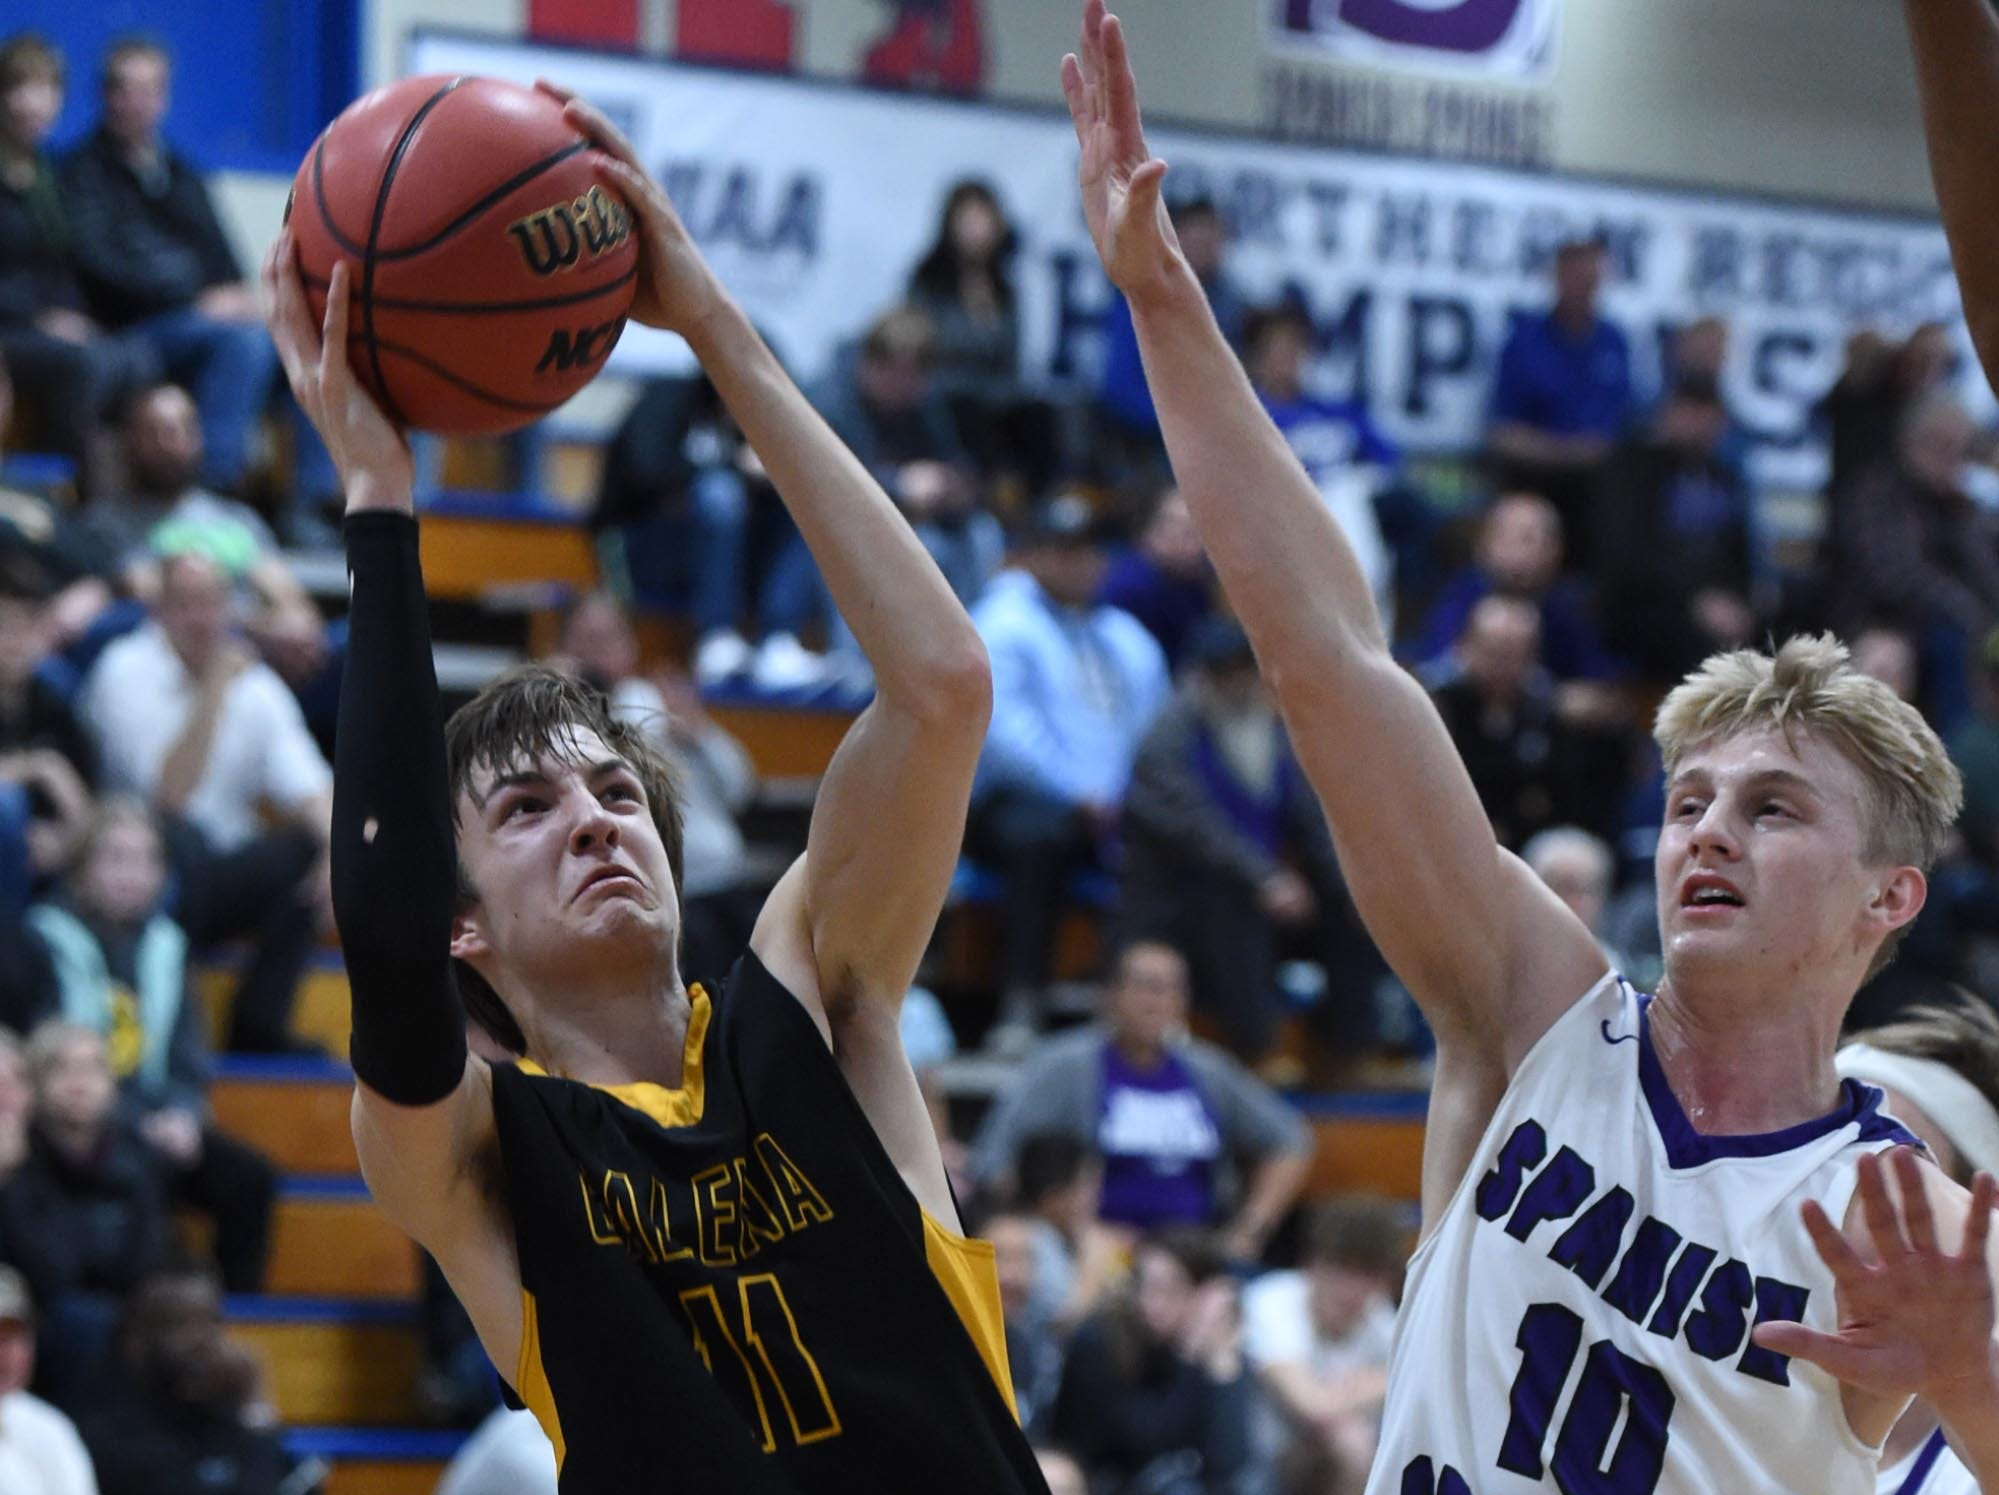 Action photos from the Spanish Springs vs Galena regional playoff game at Carson City High School on Thursday Feb 21, 2109. Spanish Springs won 51-44.